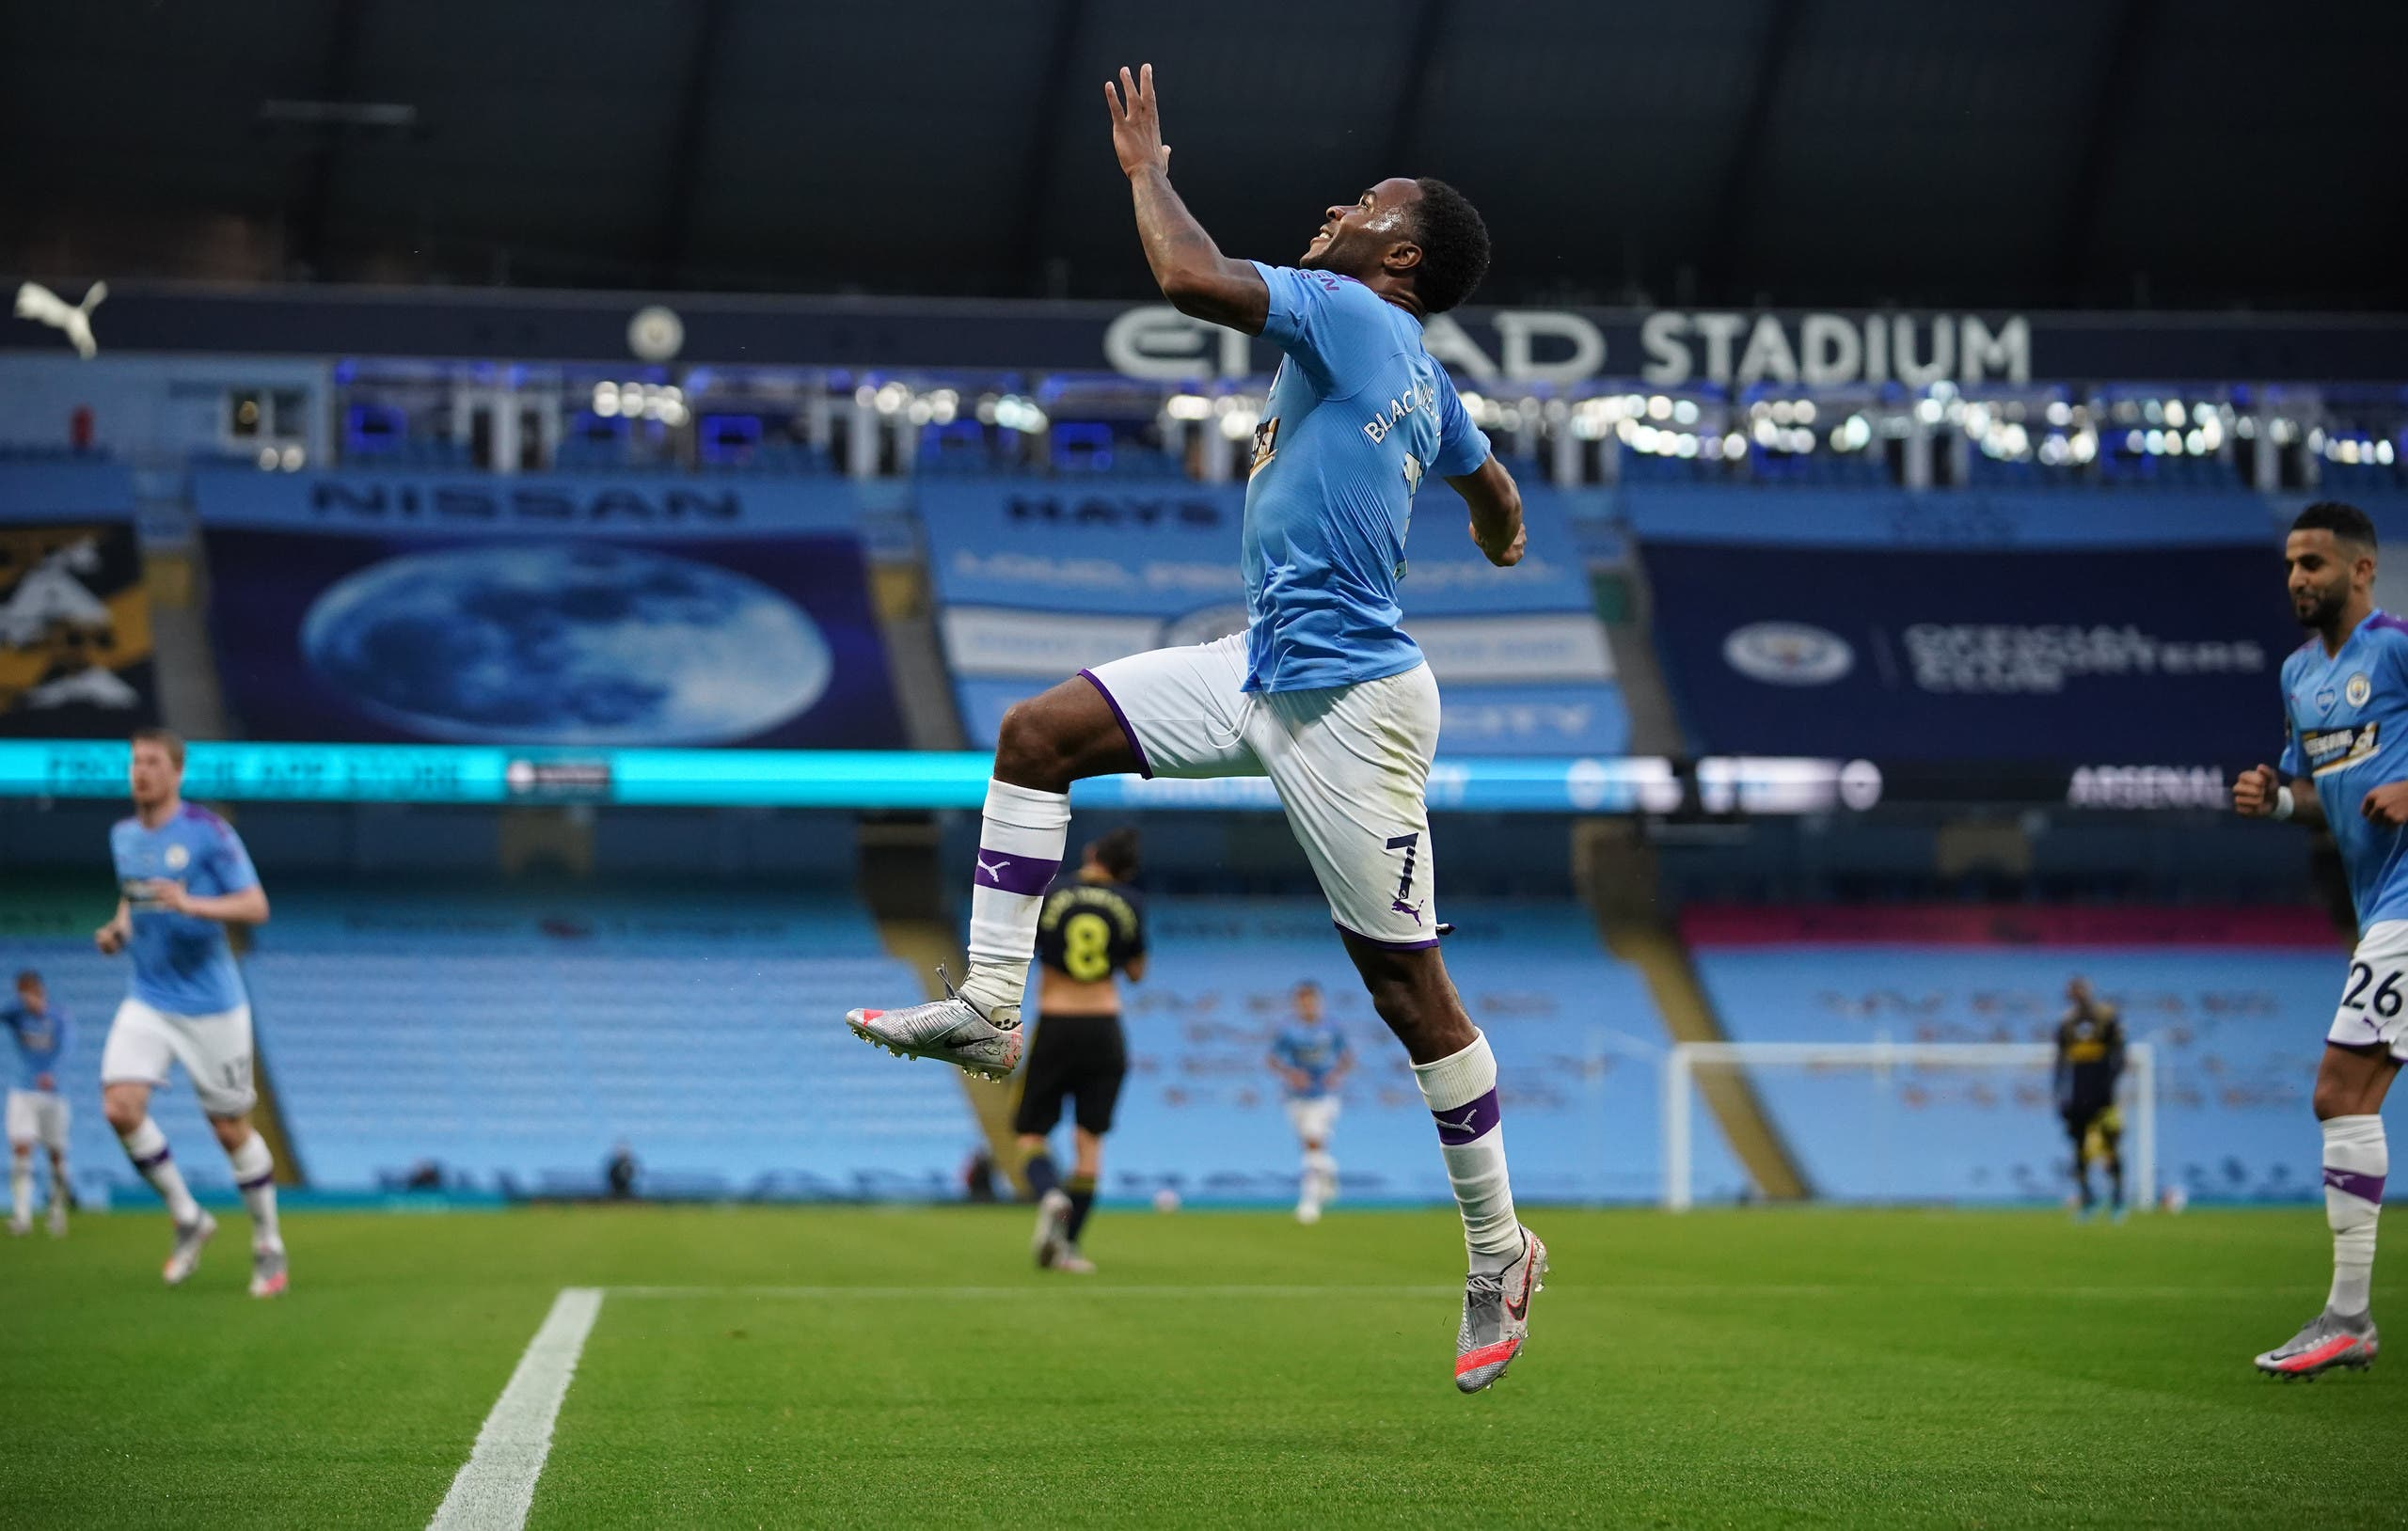 Raheem Sterling celebrates scoring for Manchester City against Arsenal, June 17, 2020. (AFP)